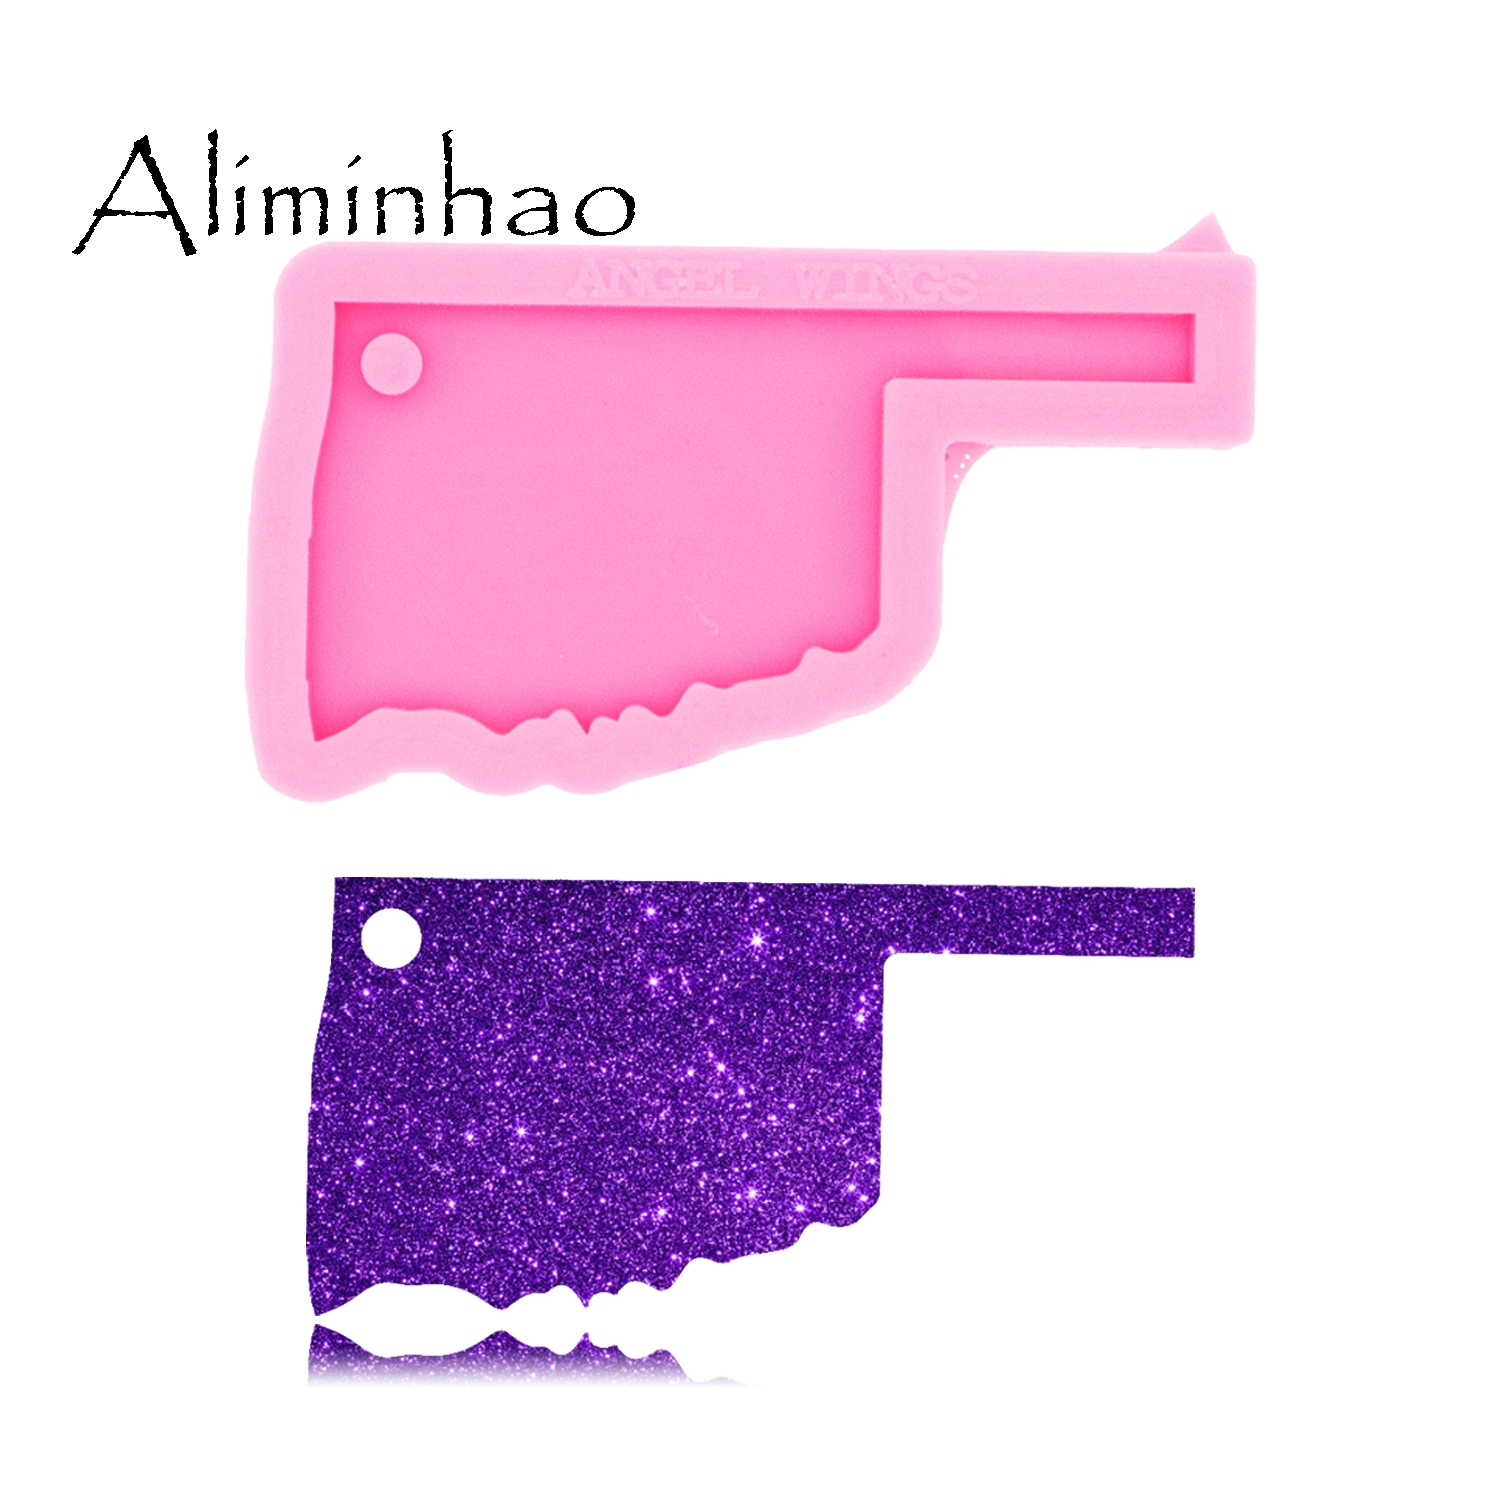 DY0229 Shiny Glossy USA State Map Oklahoma Shape Silicone Keychain Molds Epoxy And Resin Craft Mould